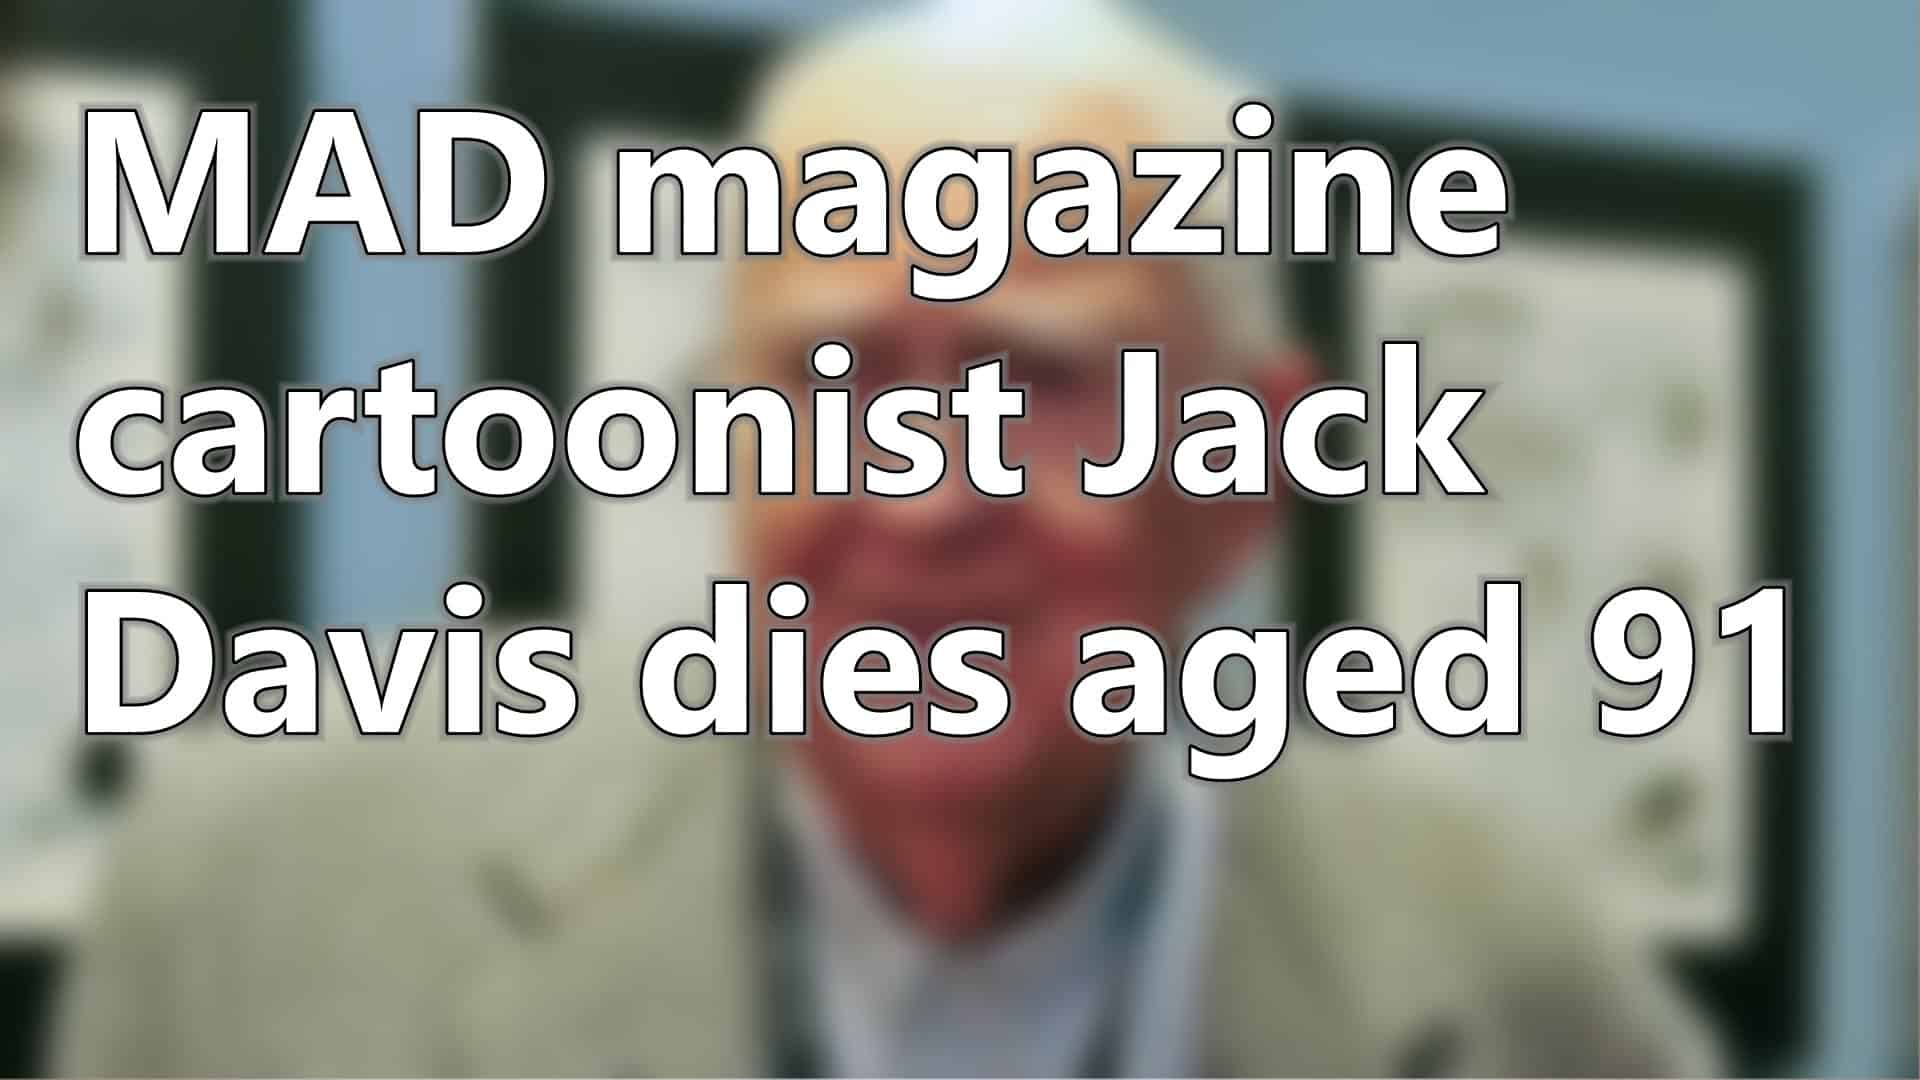 MAD magazine cartoonist Jack Davis dies aged 91 | Short News 35